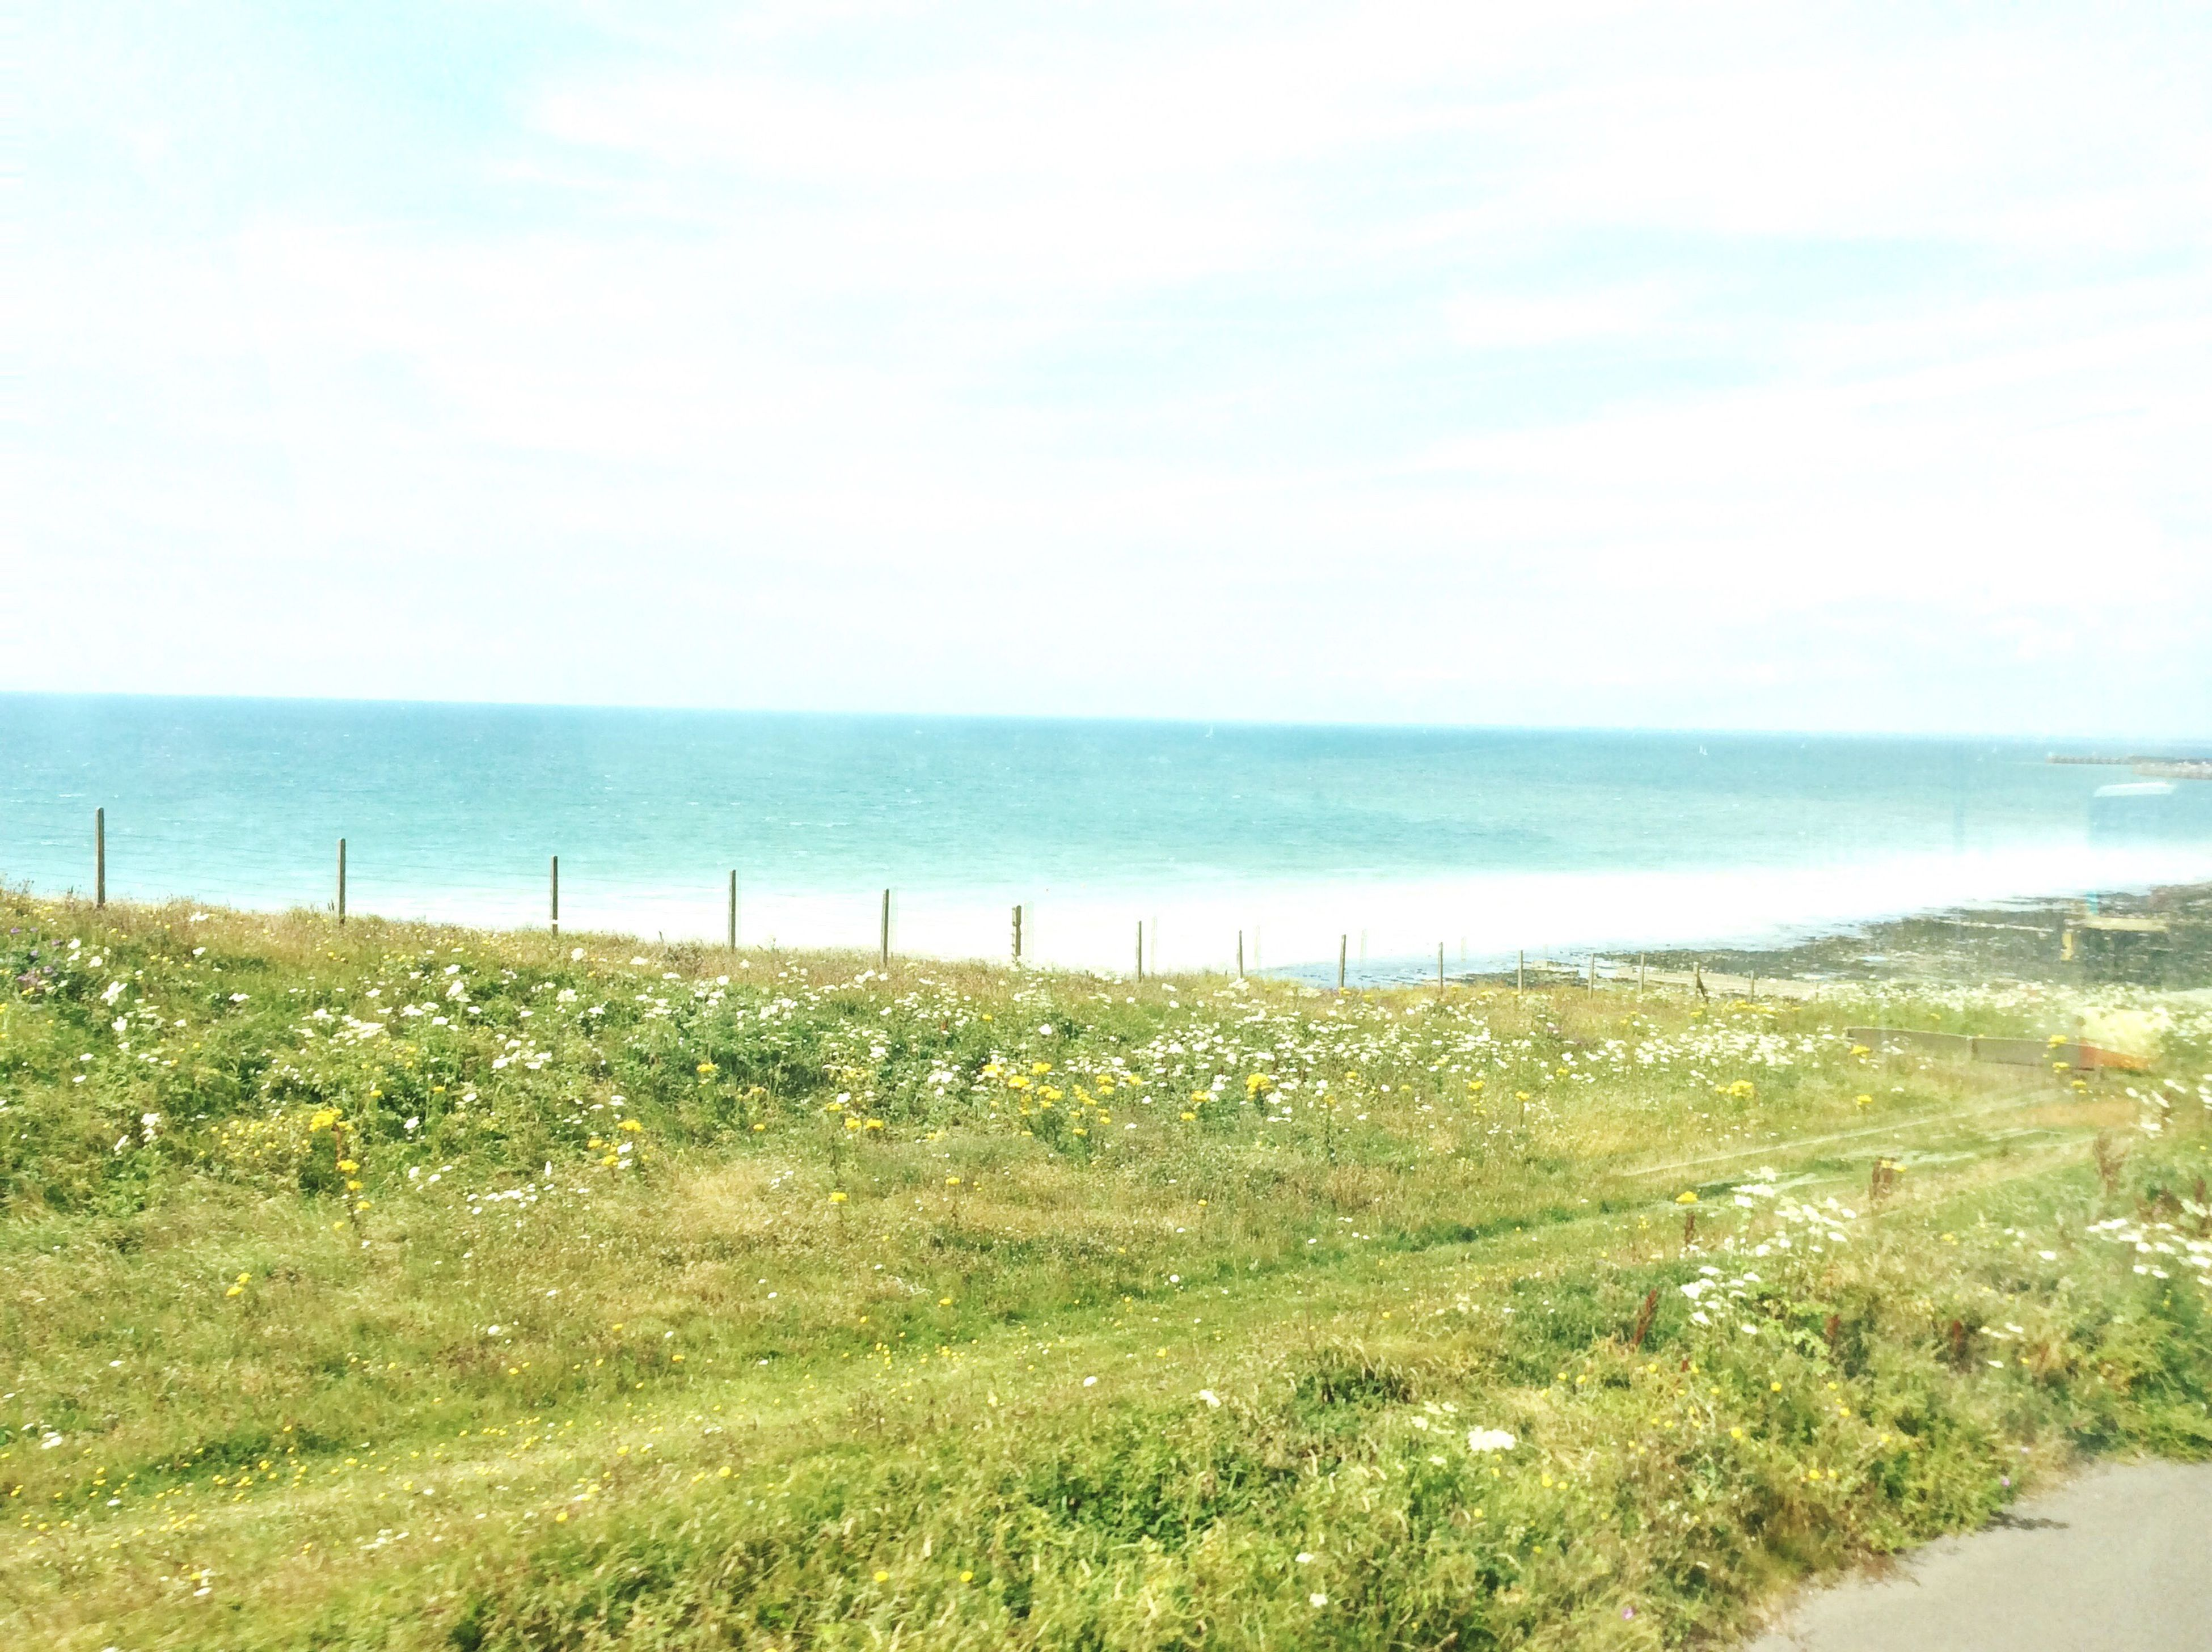 sea, horizon over water, water, grass, tranquil scene, tranquility, beach, scenics, sky, green color, shore, beauty in nature, plant, nature, idyllic, day, ocean, wooden post, non-urban scene, remote, calm, blue, solitude, growth, grassland, outdoors, grassy, green, coastline, cloud - sky, no people, footpath, leading